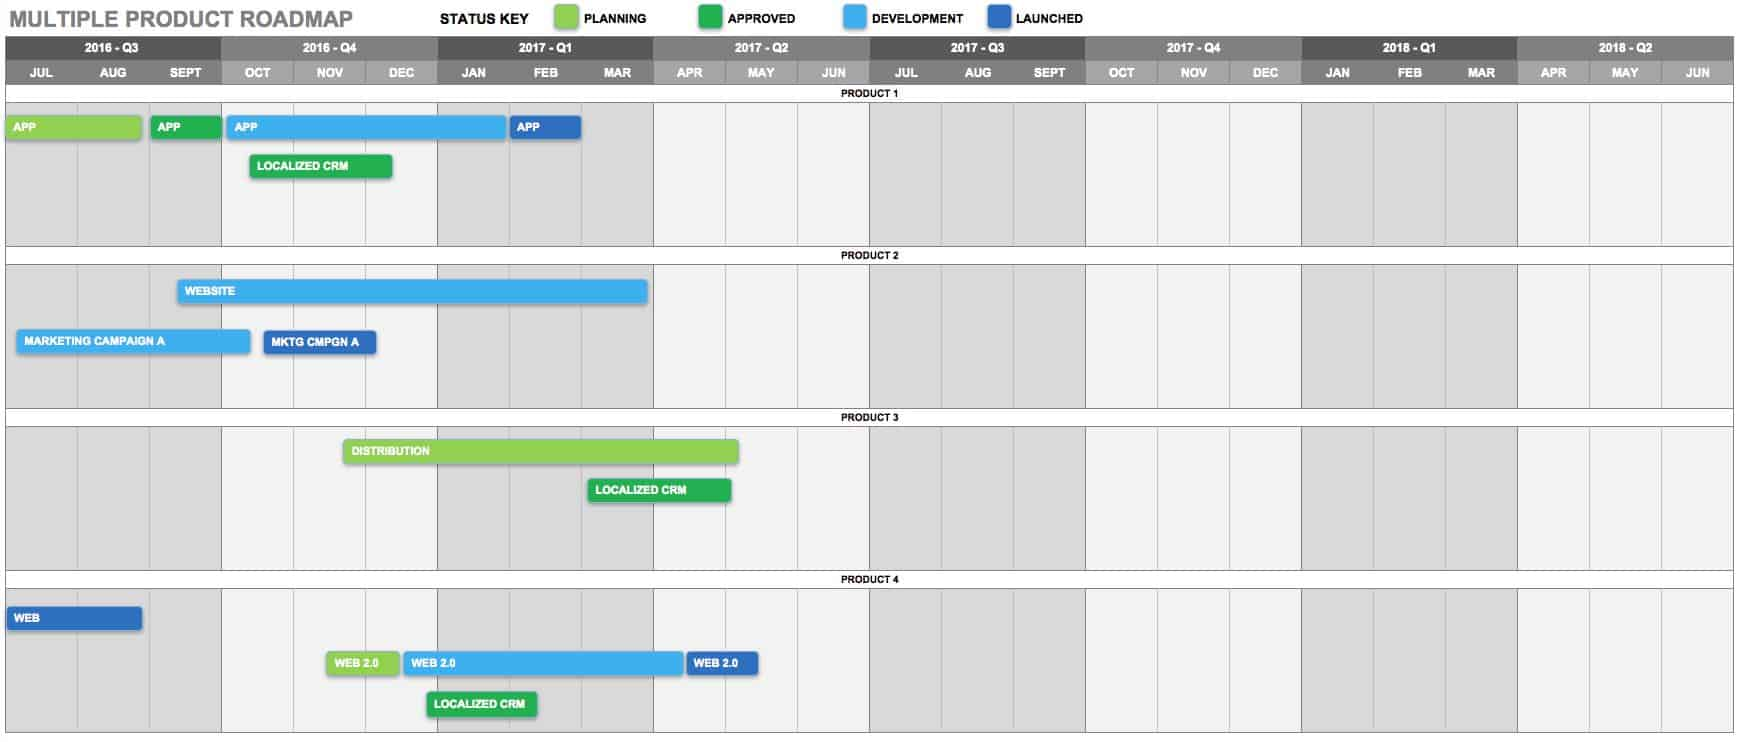 Free Product Roadmap Templates - Smartsheet